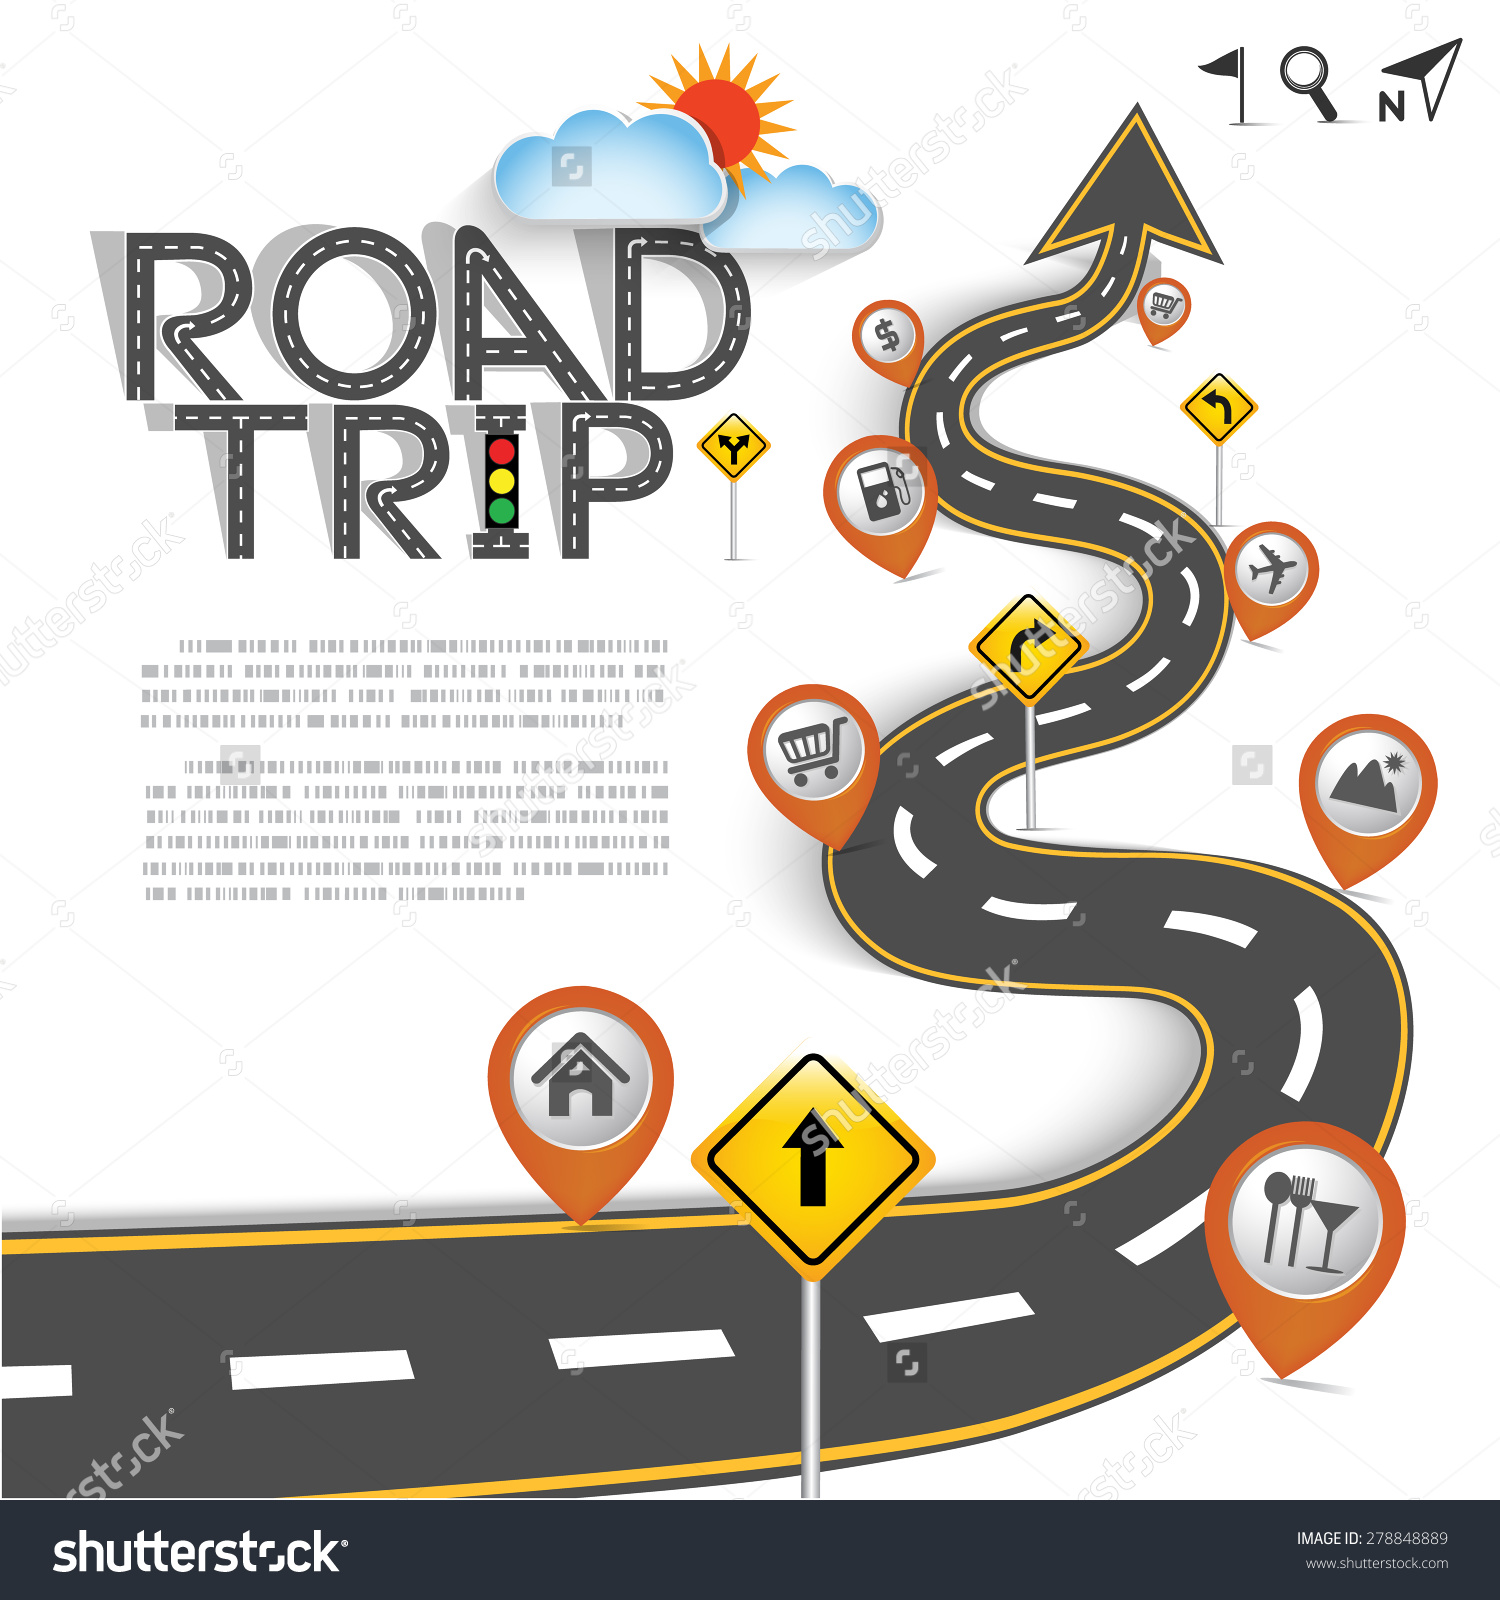 road trip map clipart 20 free Cliparts | Download images ...